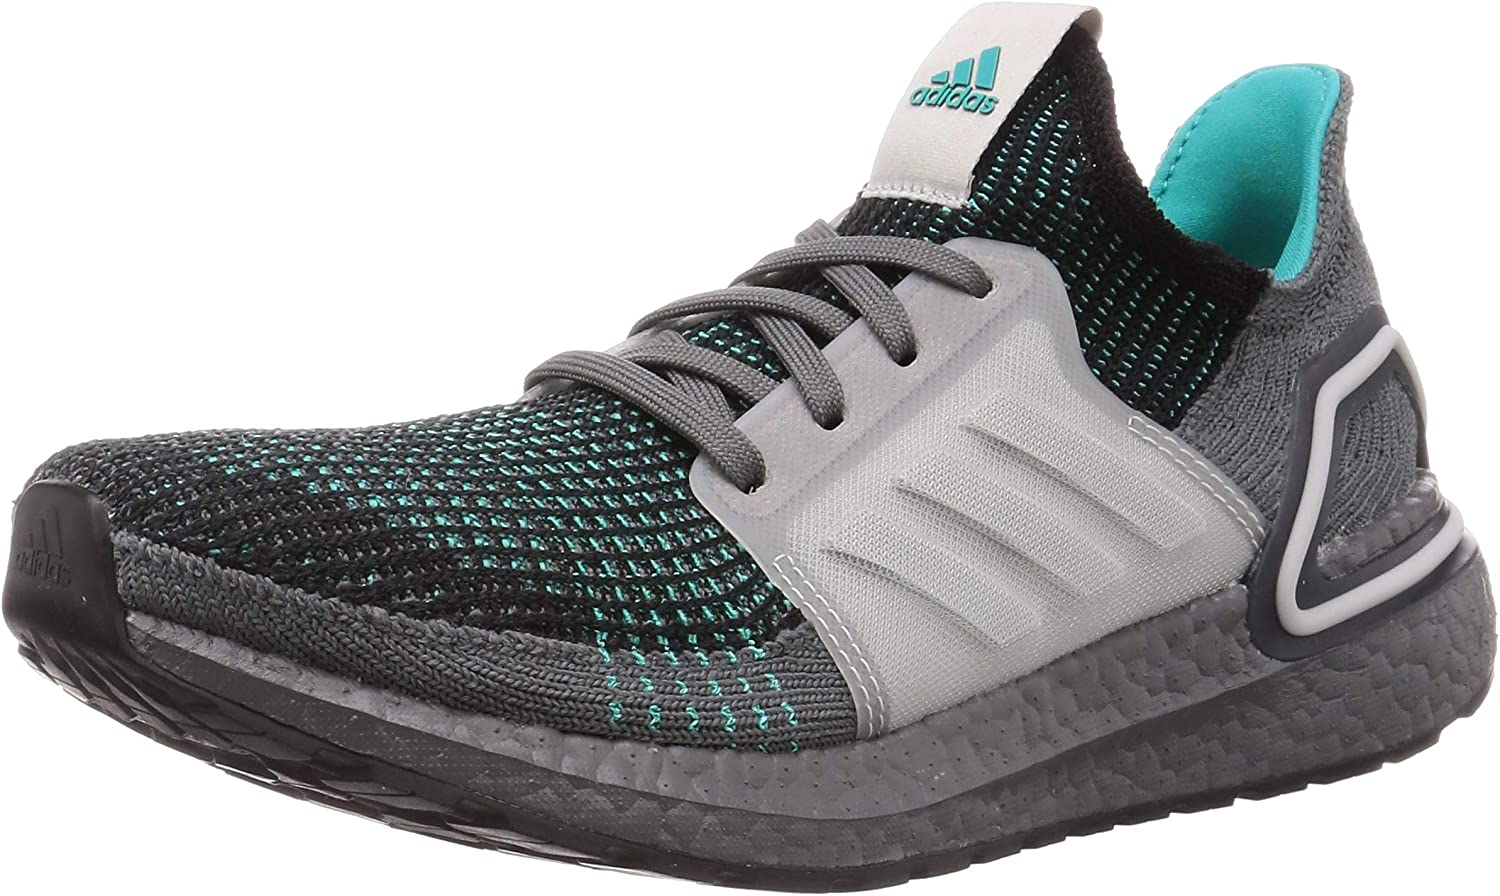 Cuadrante Abrasivo Elasticidad  Amazon.com | adidas Ultraboost 19 m EF1339 Grey/Black | Shoes